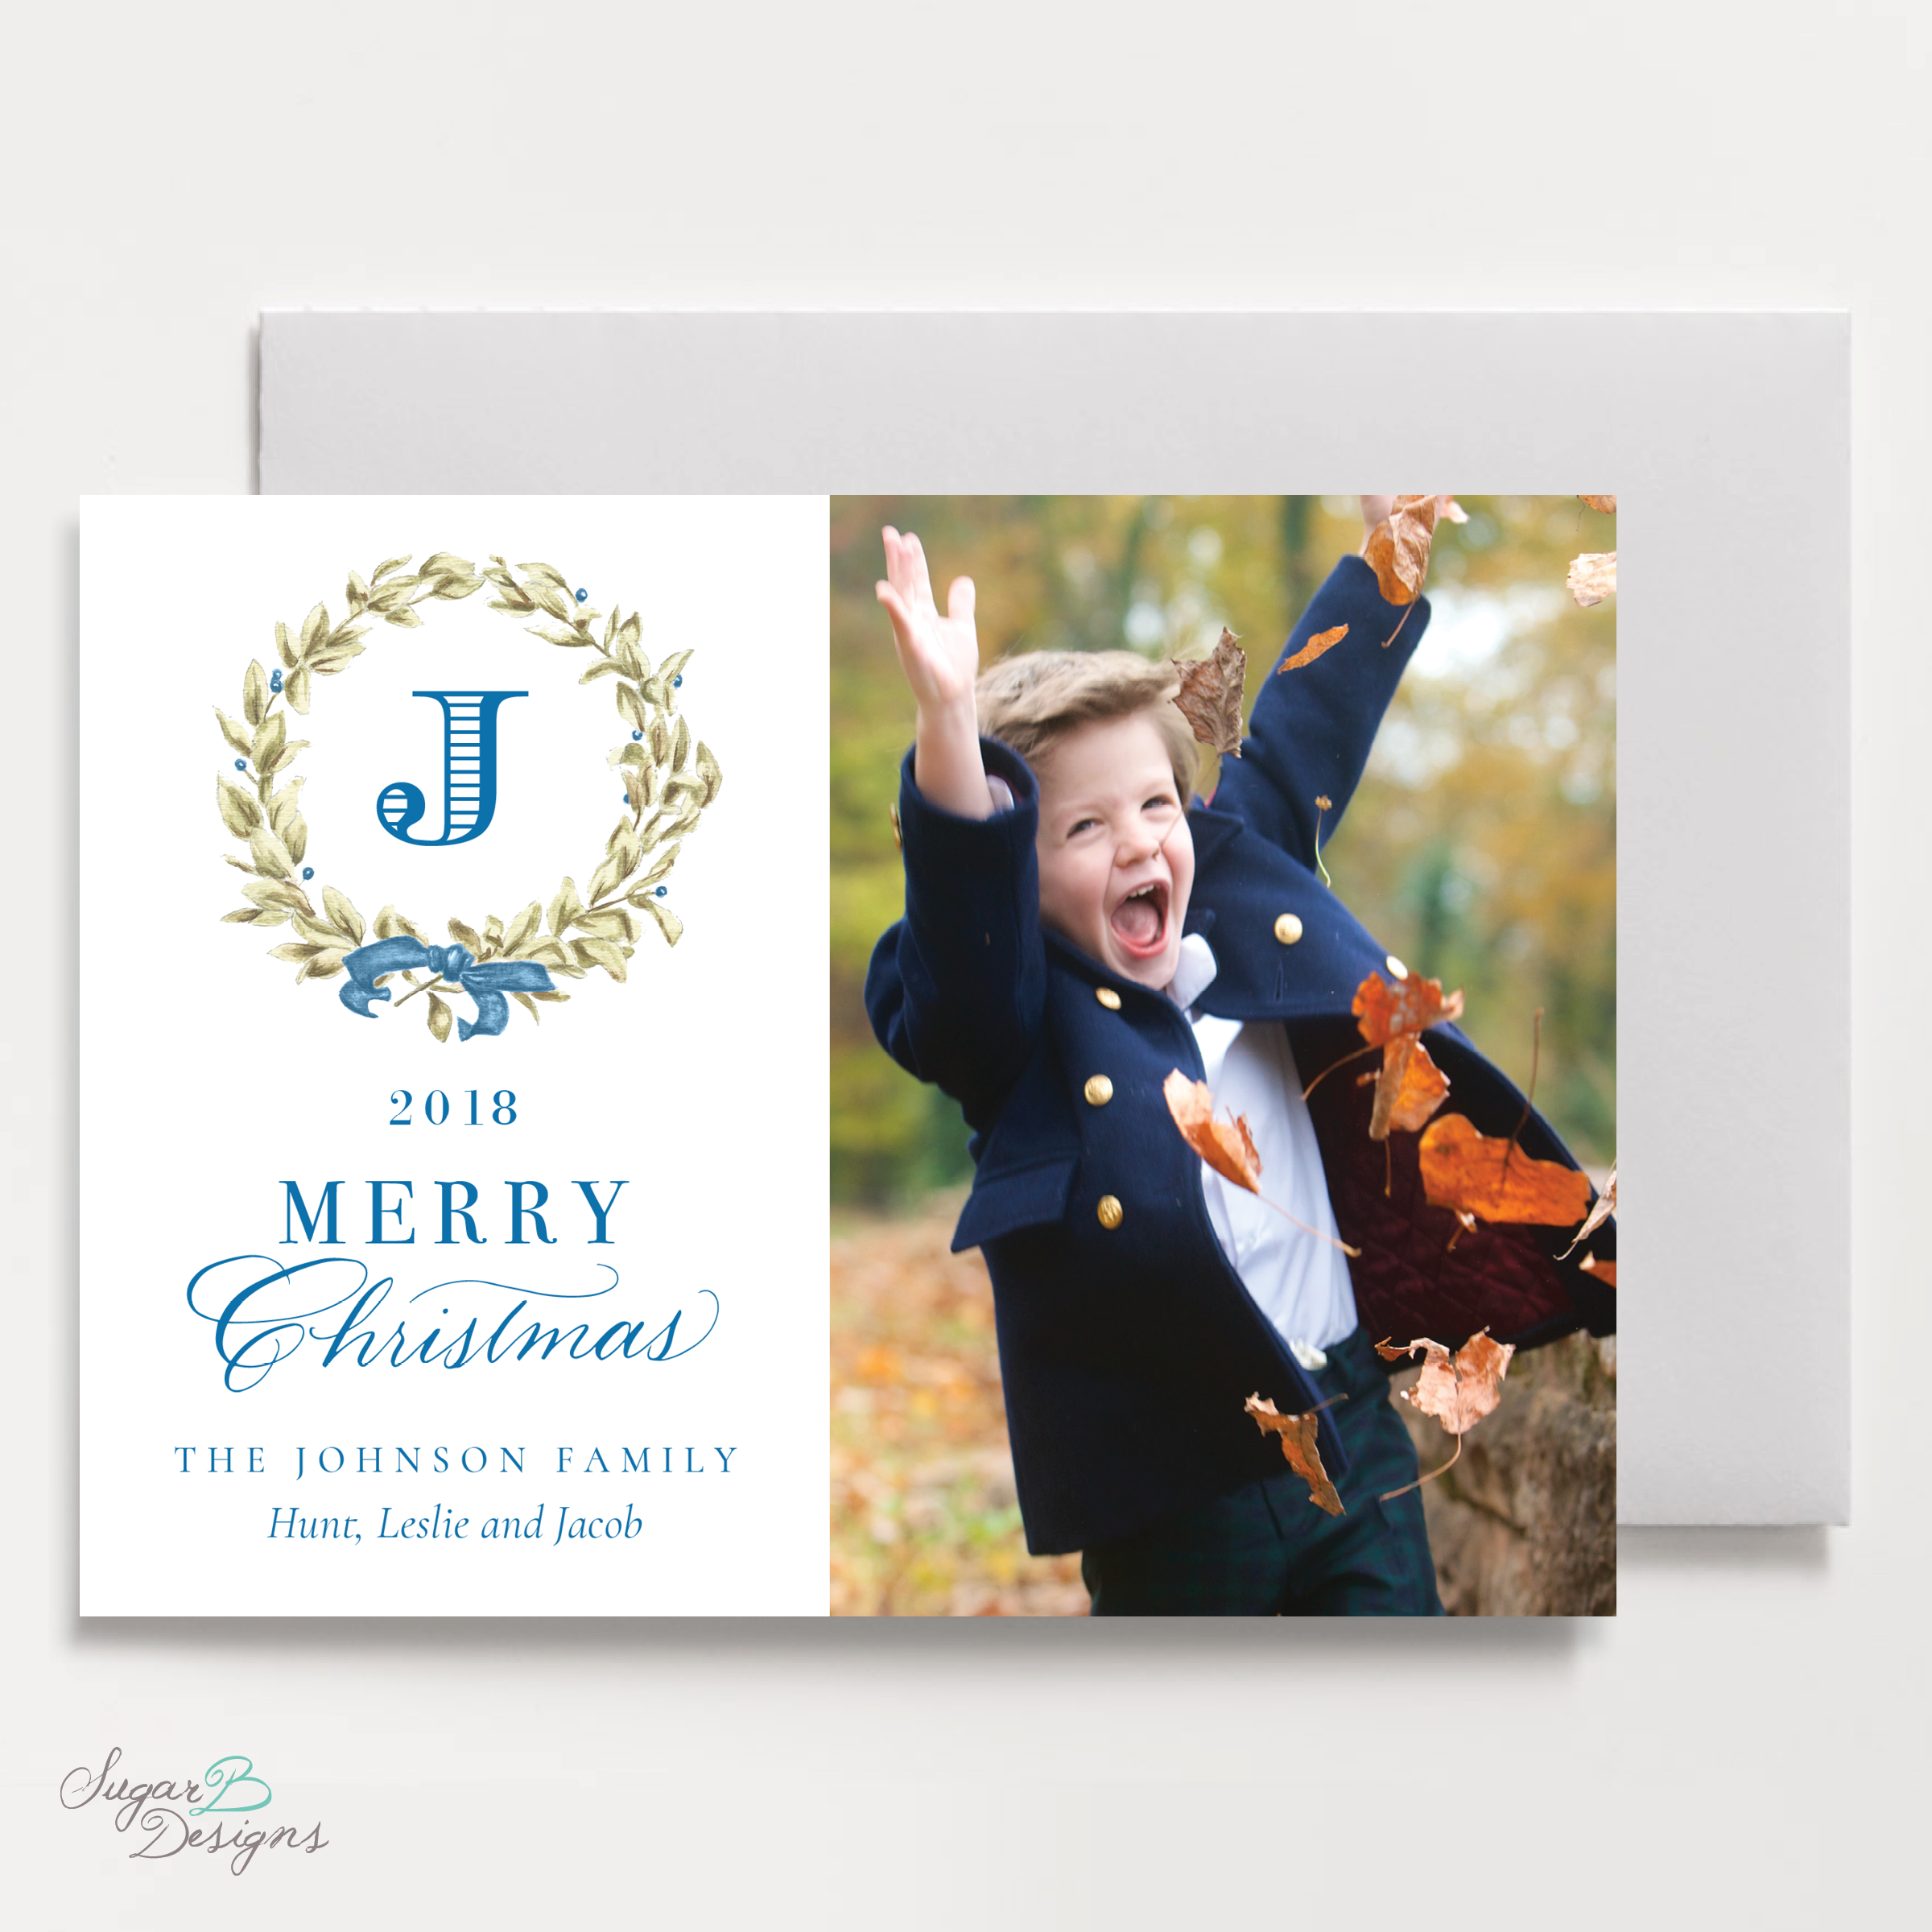 Meryl Wreath Blue Landscape front Christmas Card by Sugar B Designs.png